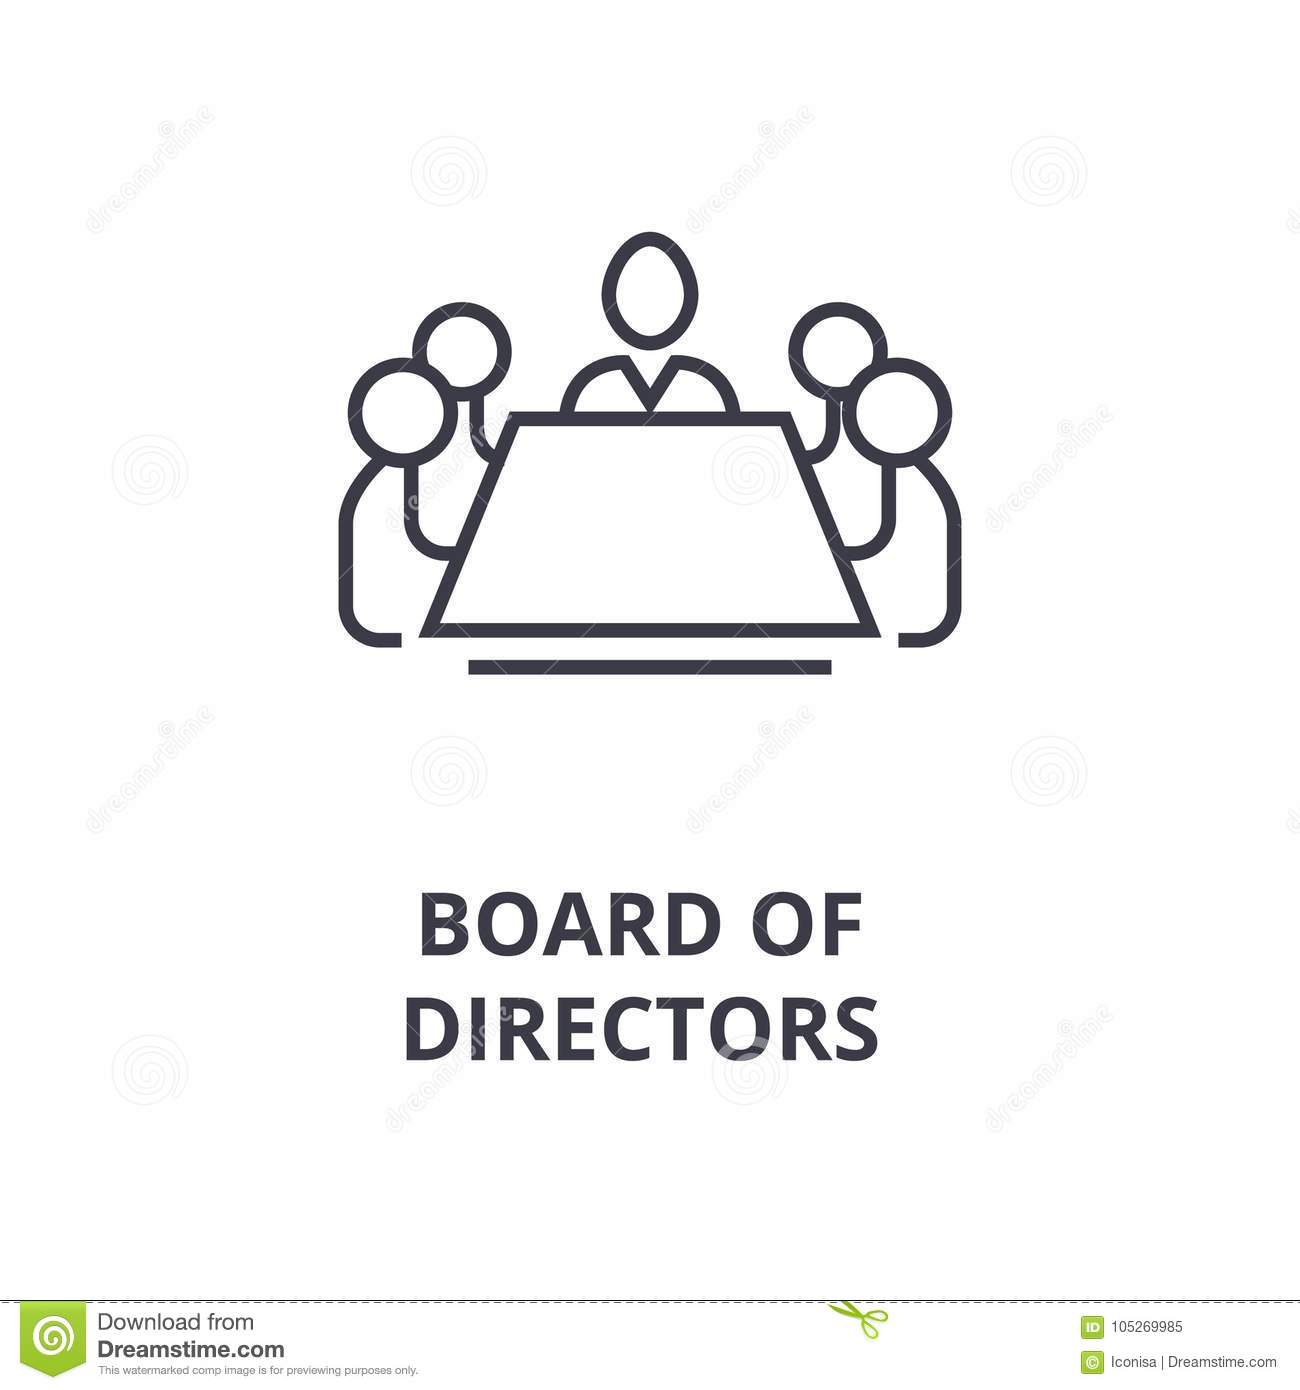 Board Of Directors Line Icon Outline Sign Linear Symbol